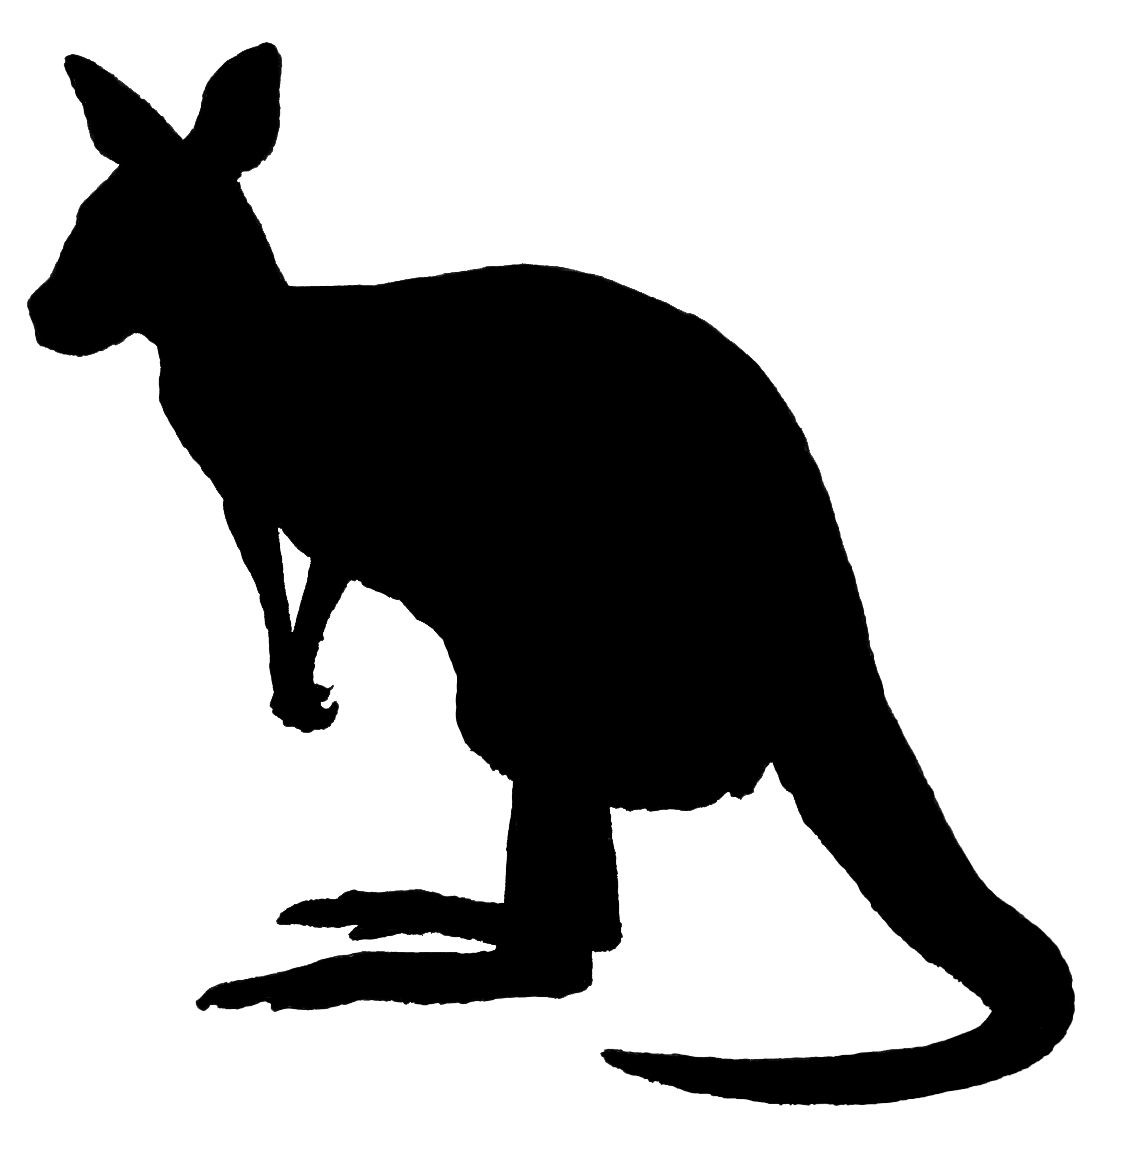 kangaroo silhouette get drawin for personal #39226